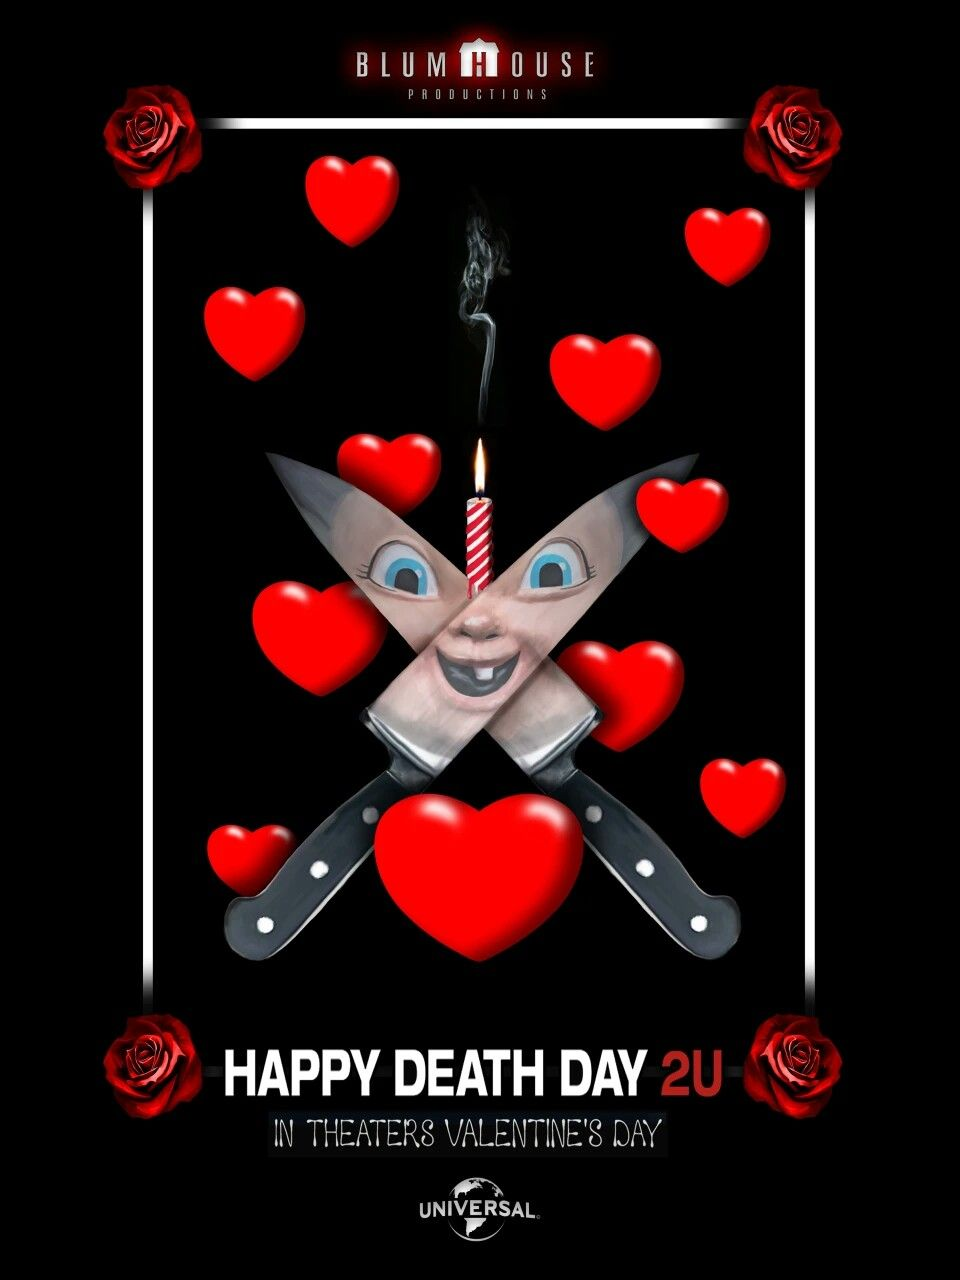 Pin by The Slasher on Miscellaneous horror/thriller | Happy death day, Death,  Happy